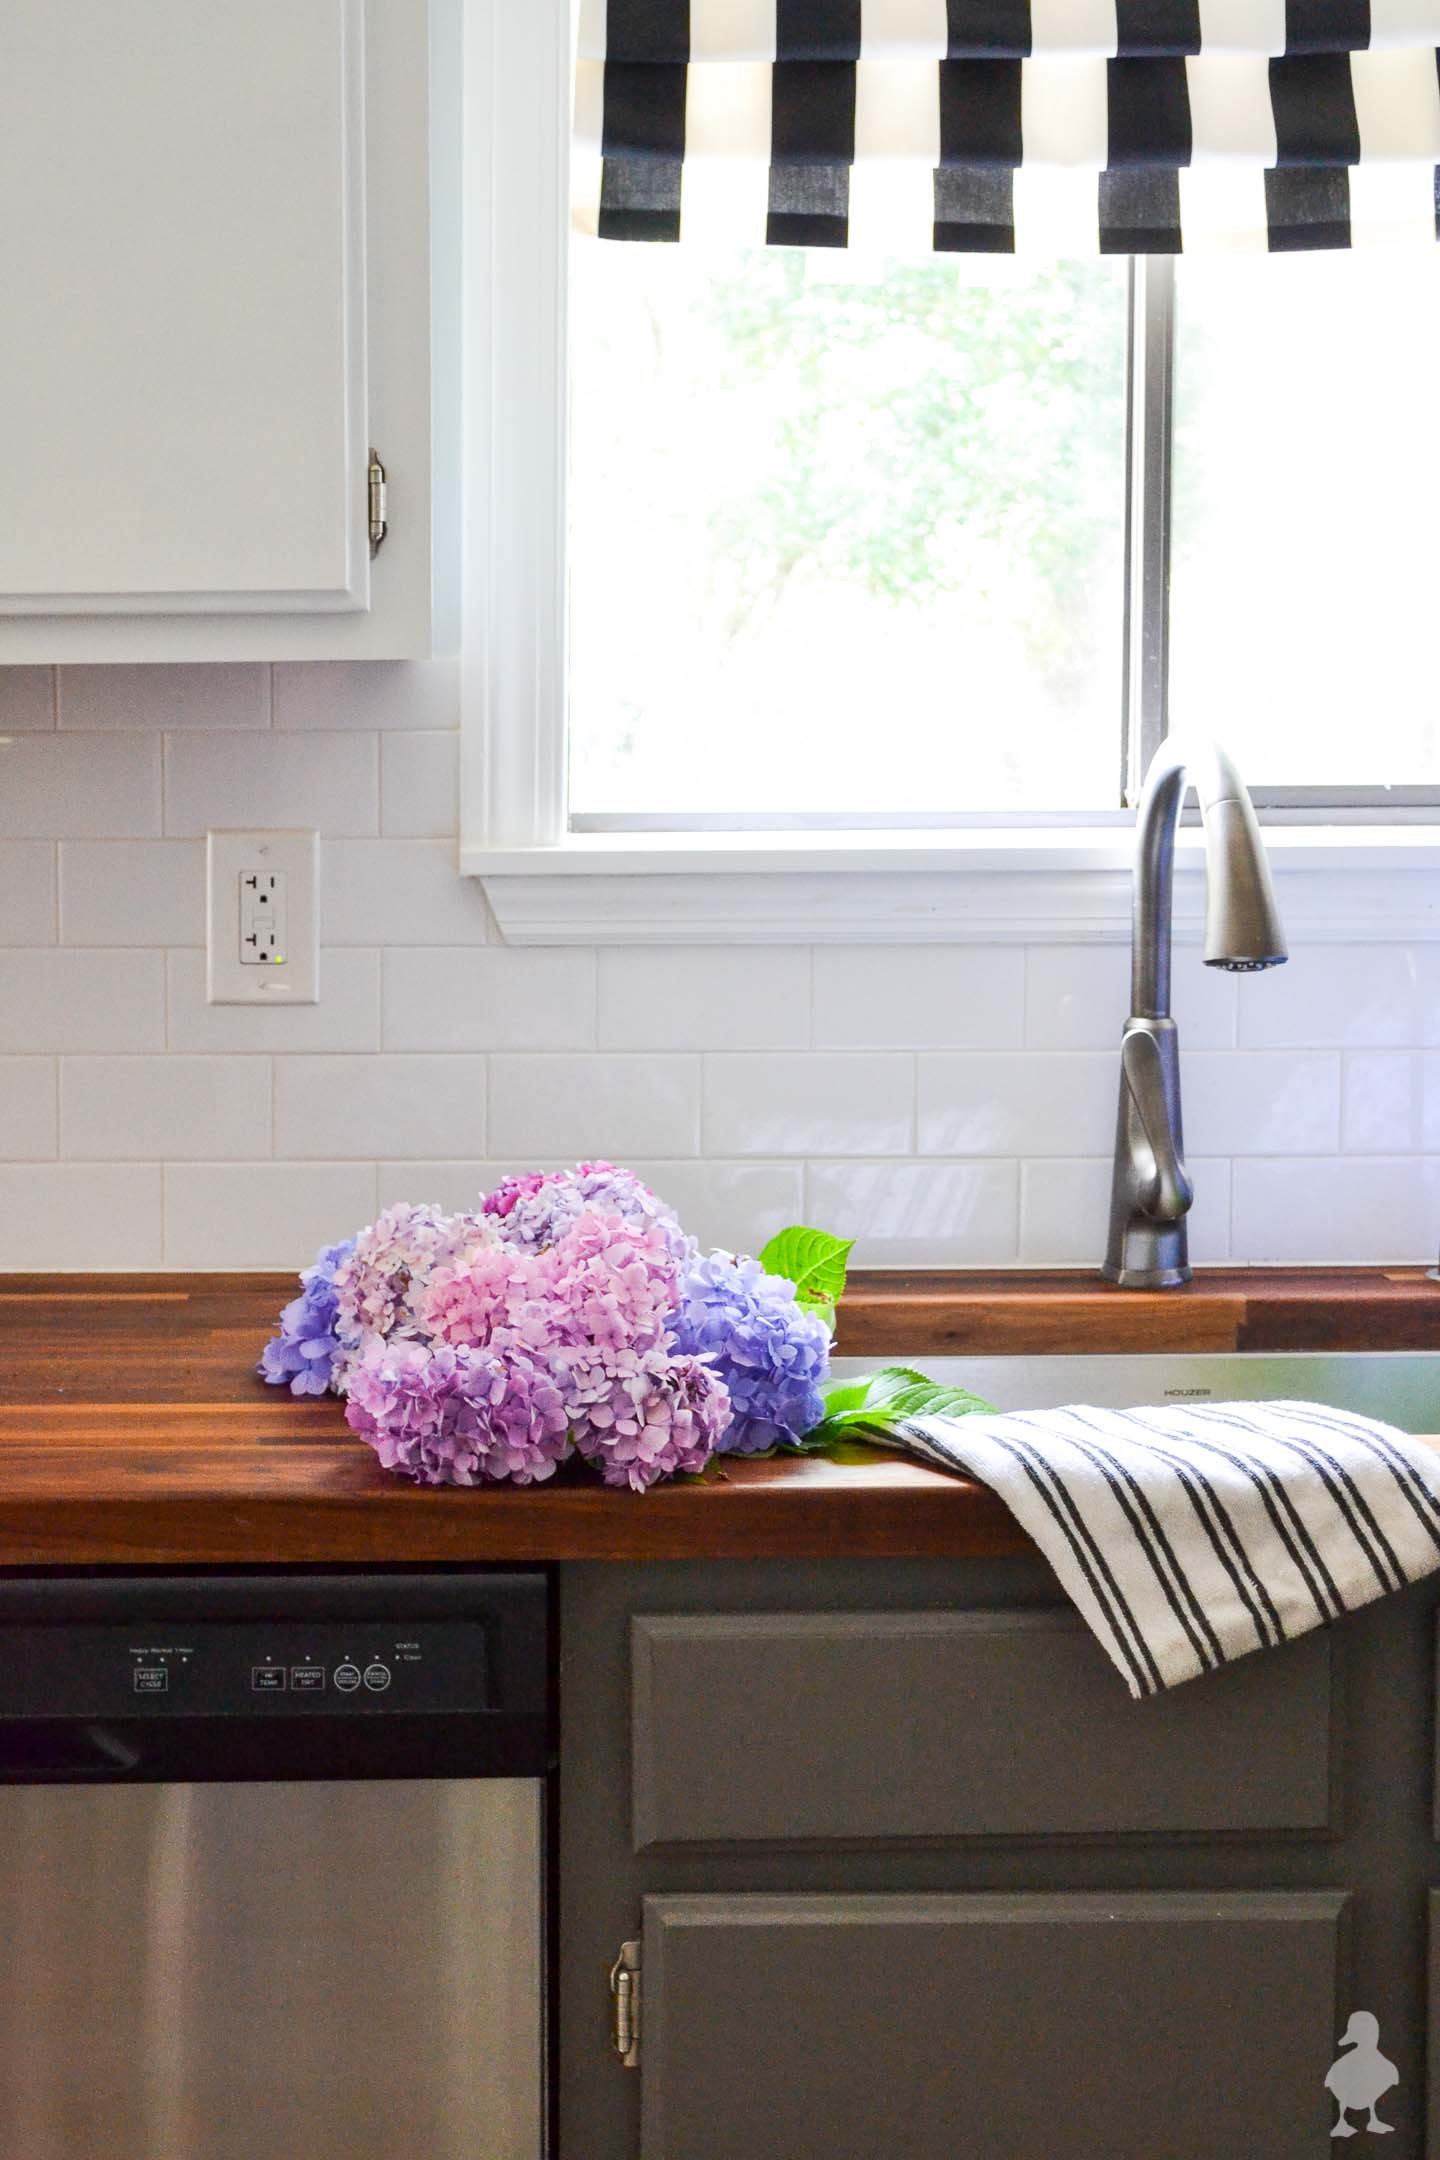 closeup of butcher block counters and sink with pink and purple hydrangeas